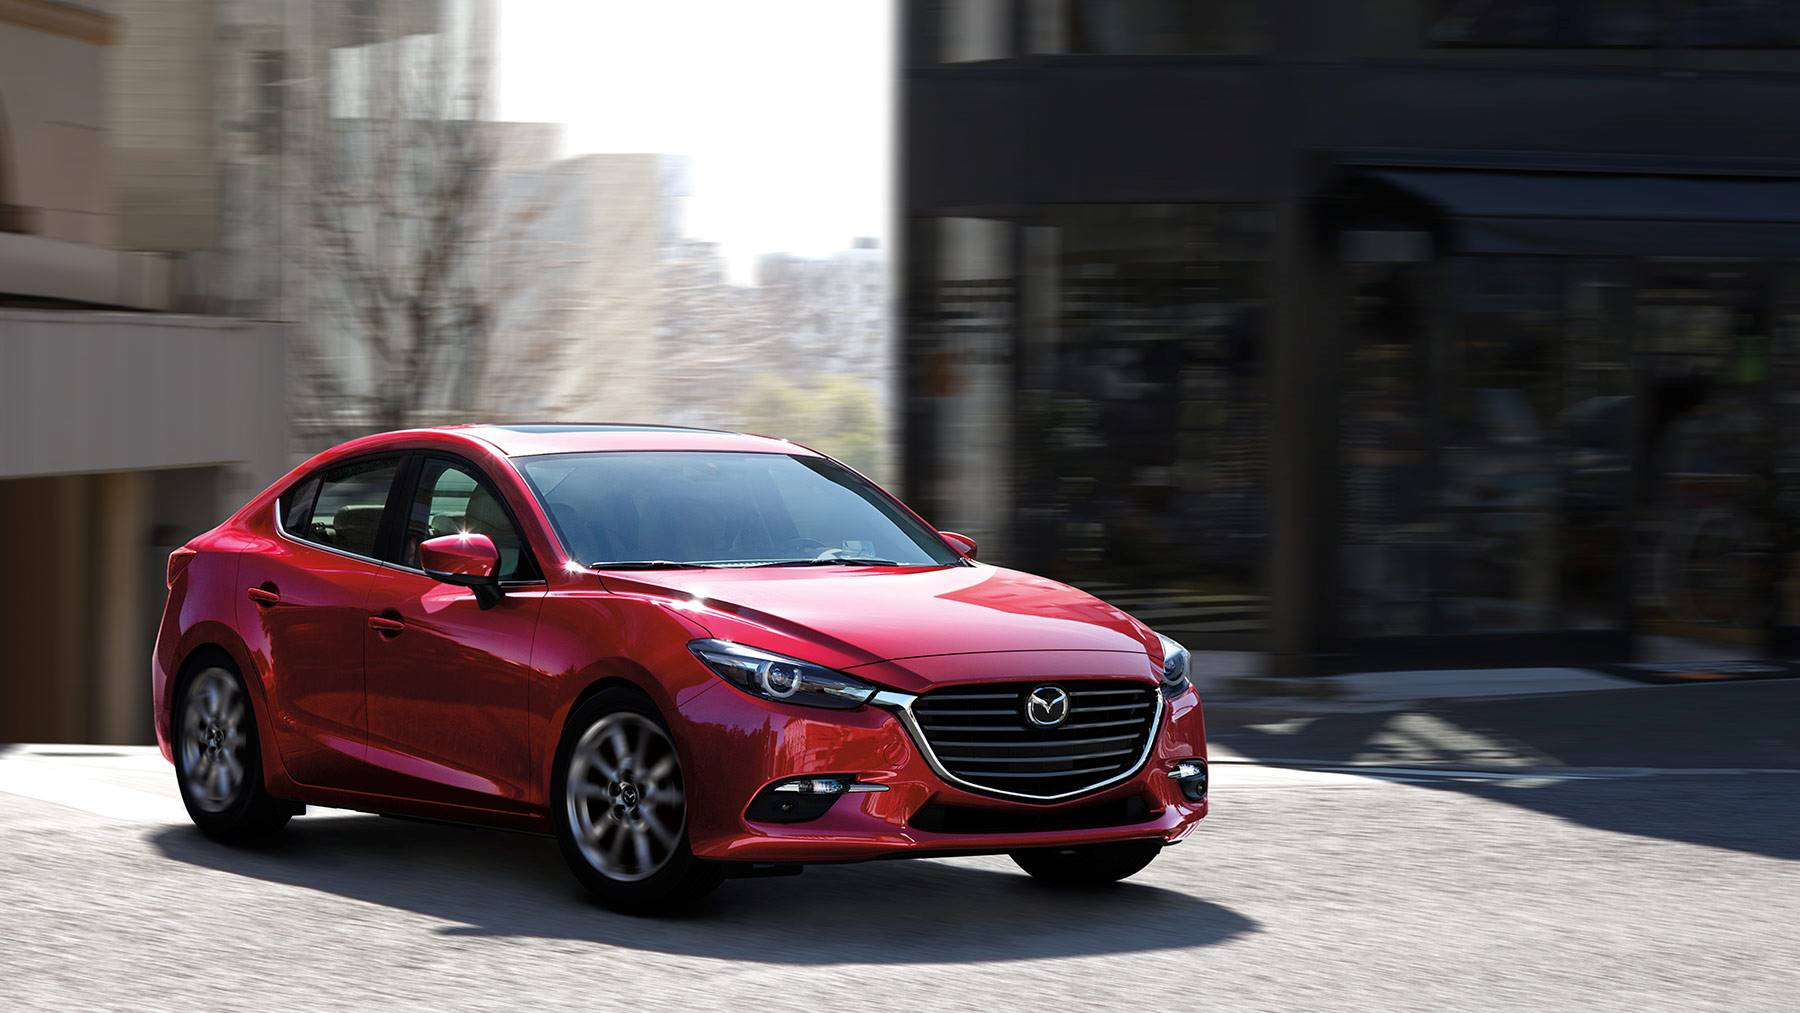 2018 Mazda3 for Sale near Phoenix, AZ